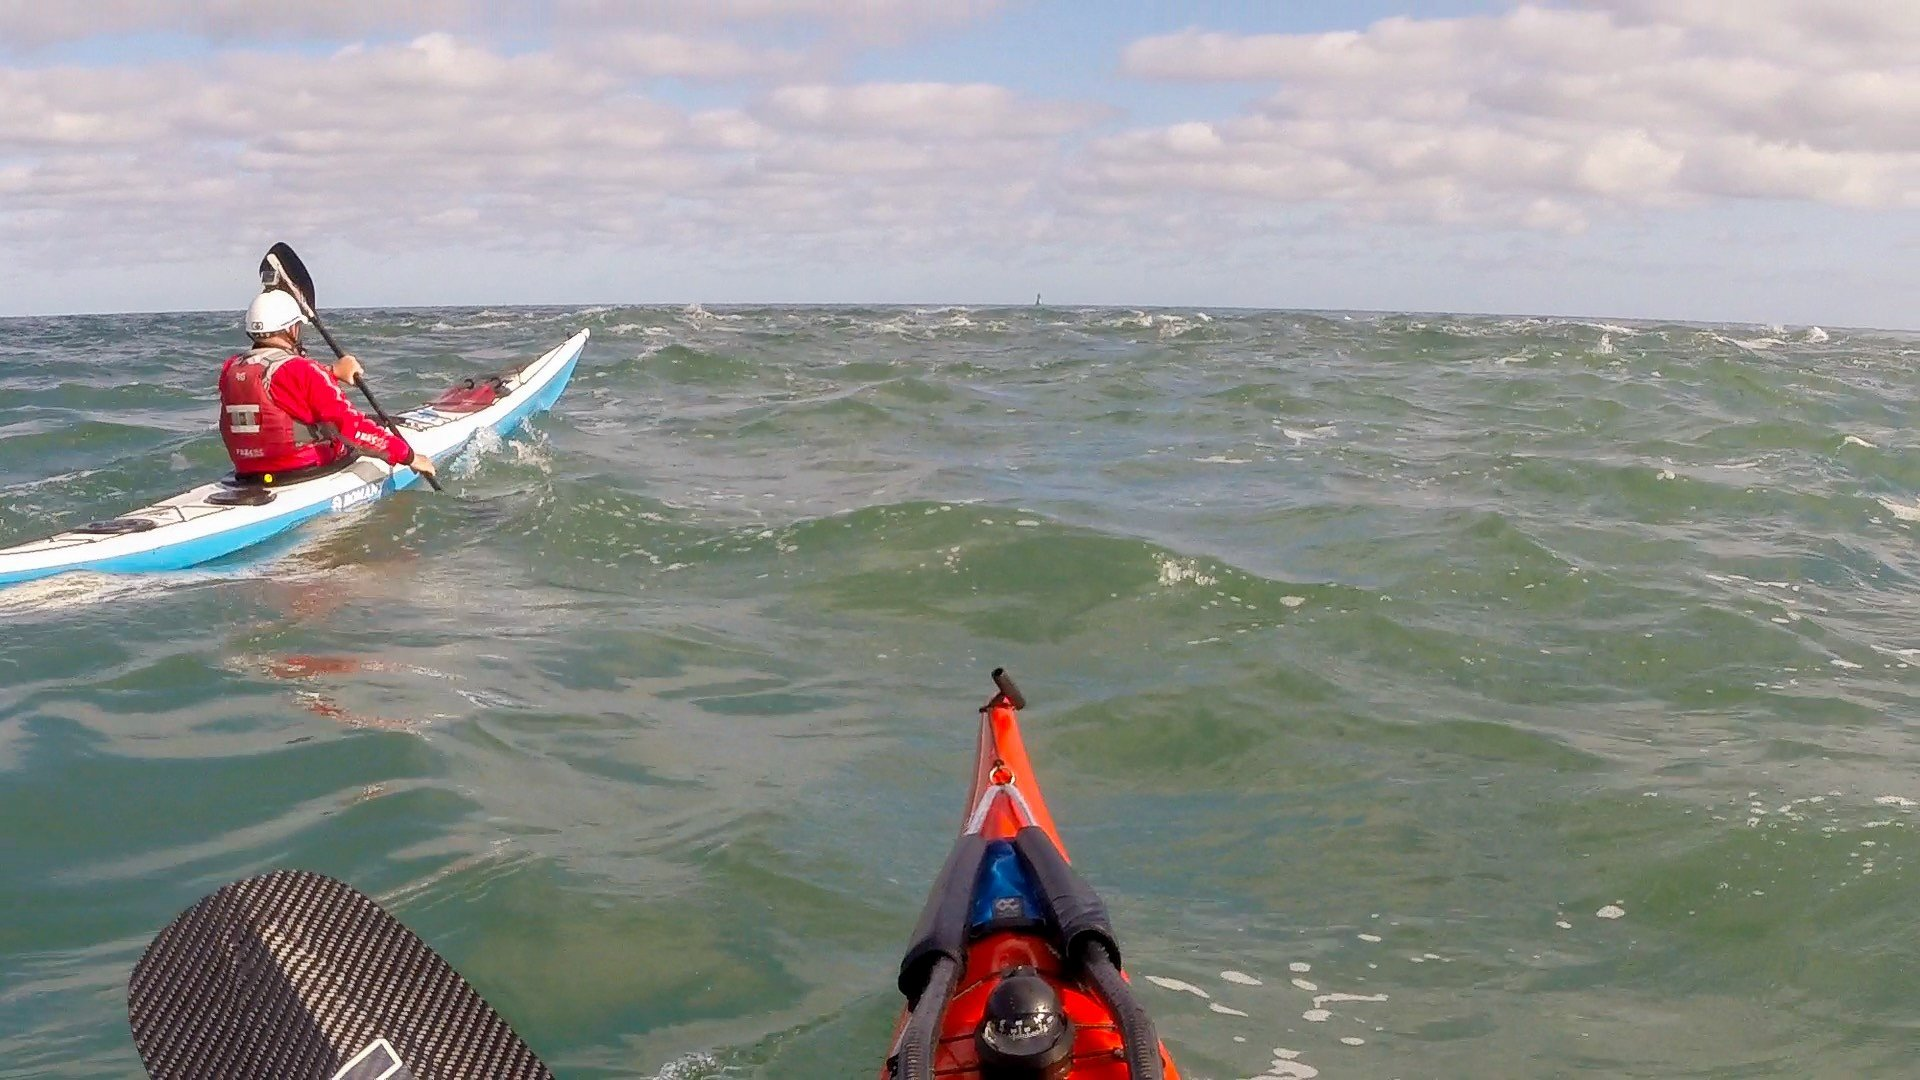 Heading out towards Ethel Cardinal